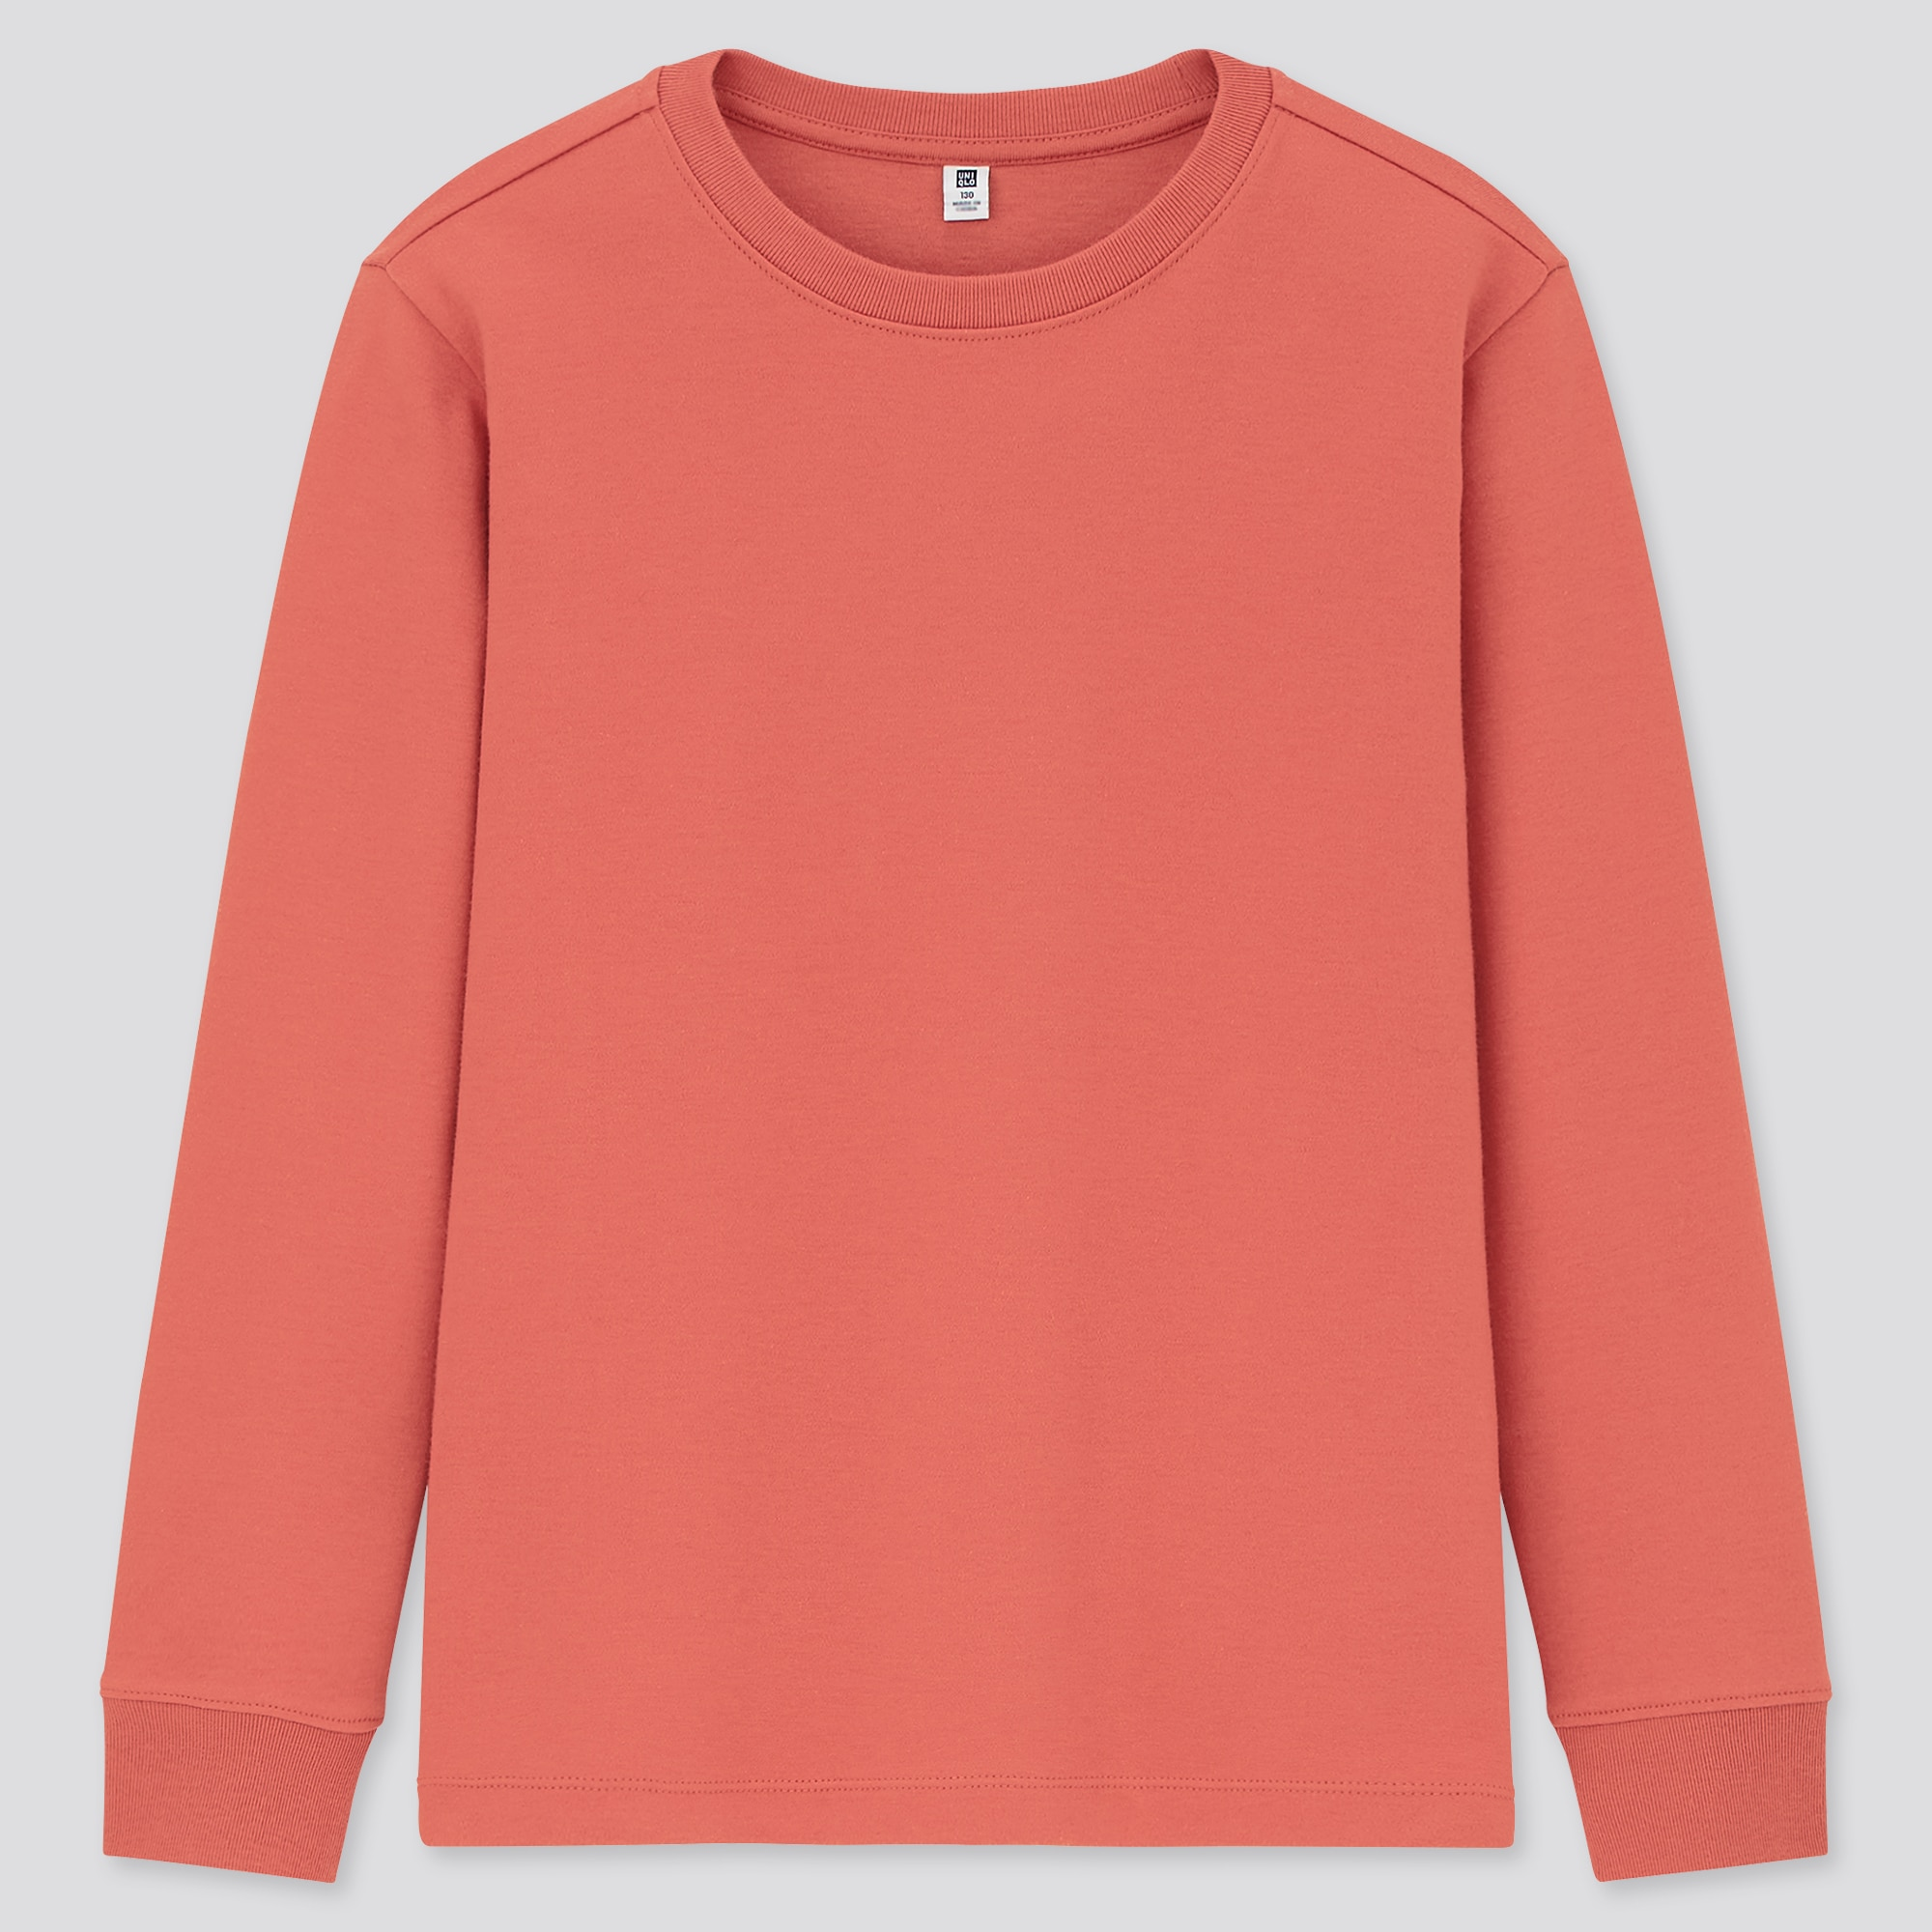 Uniqlo KIDS SOFT TOUCH CREW NECK LONG-SLEEVE T-SHIRT